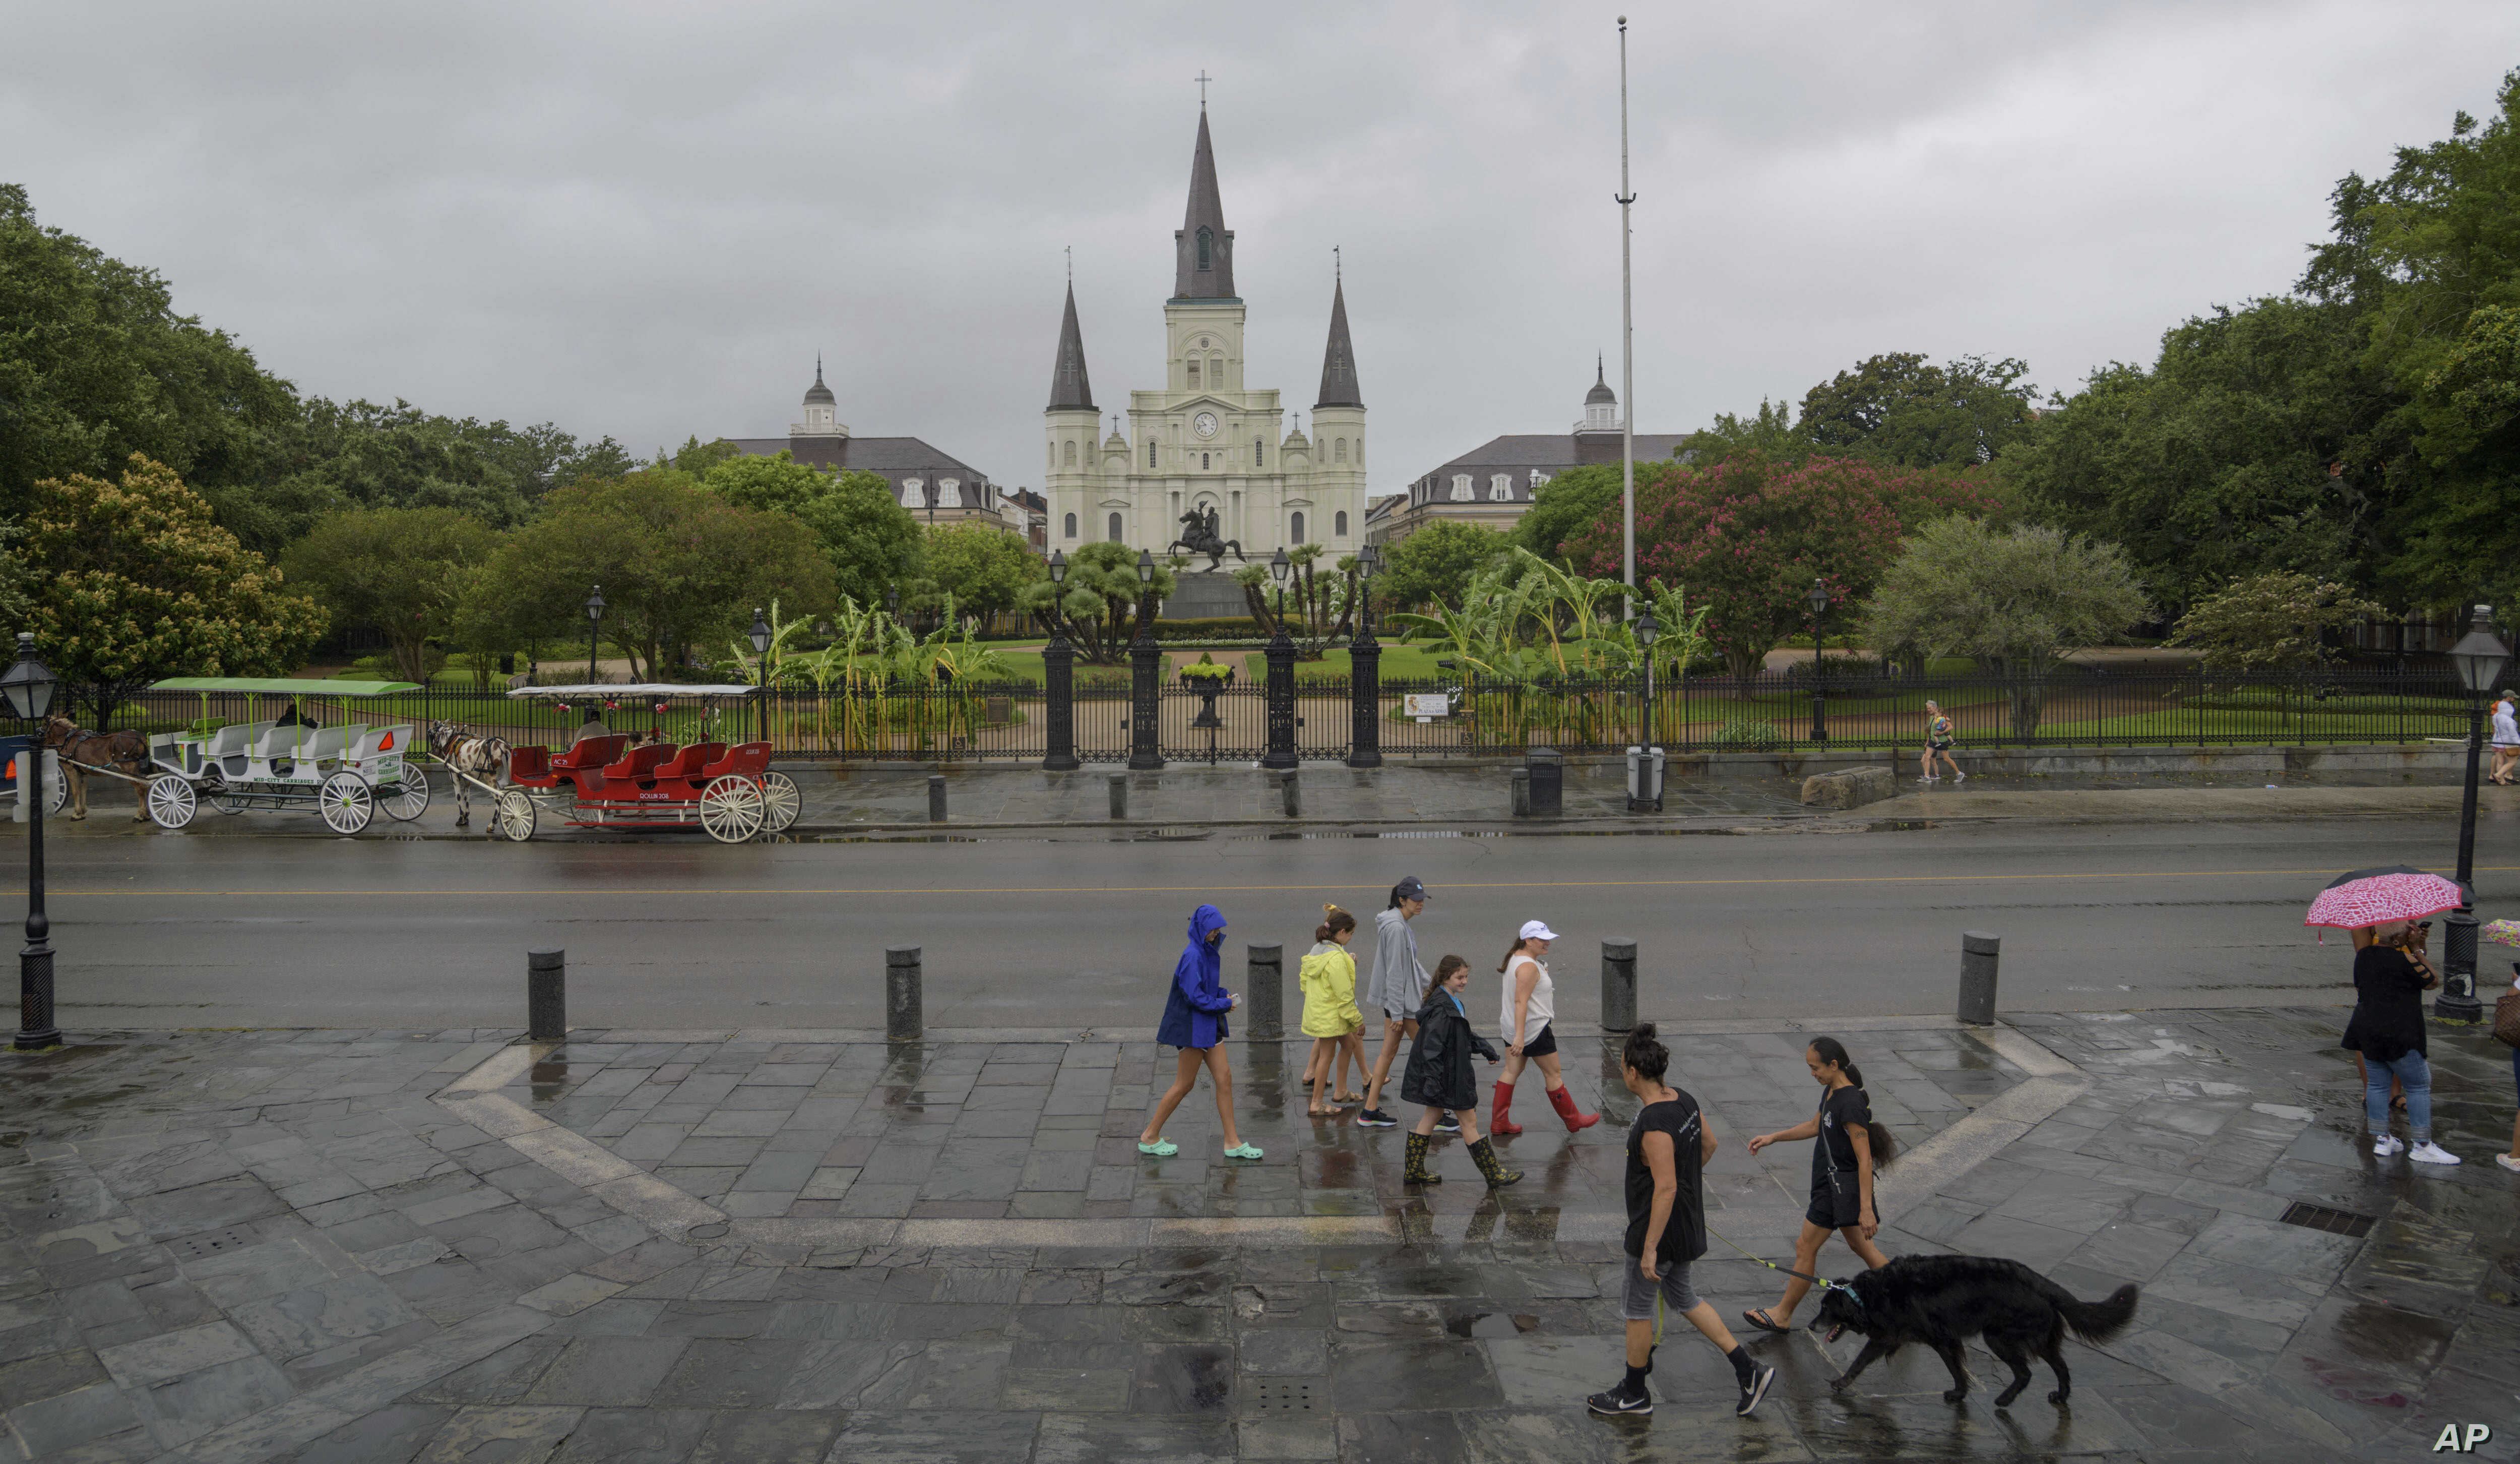 People walk past Jackson Square and St. Louis Cathedral in the French Quarter before landfall of Tropical Storm Barry from the Gulf of Mexico in New Orleans, La., July 12, 2019.